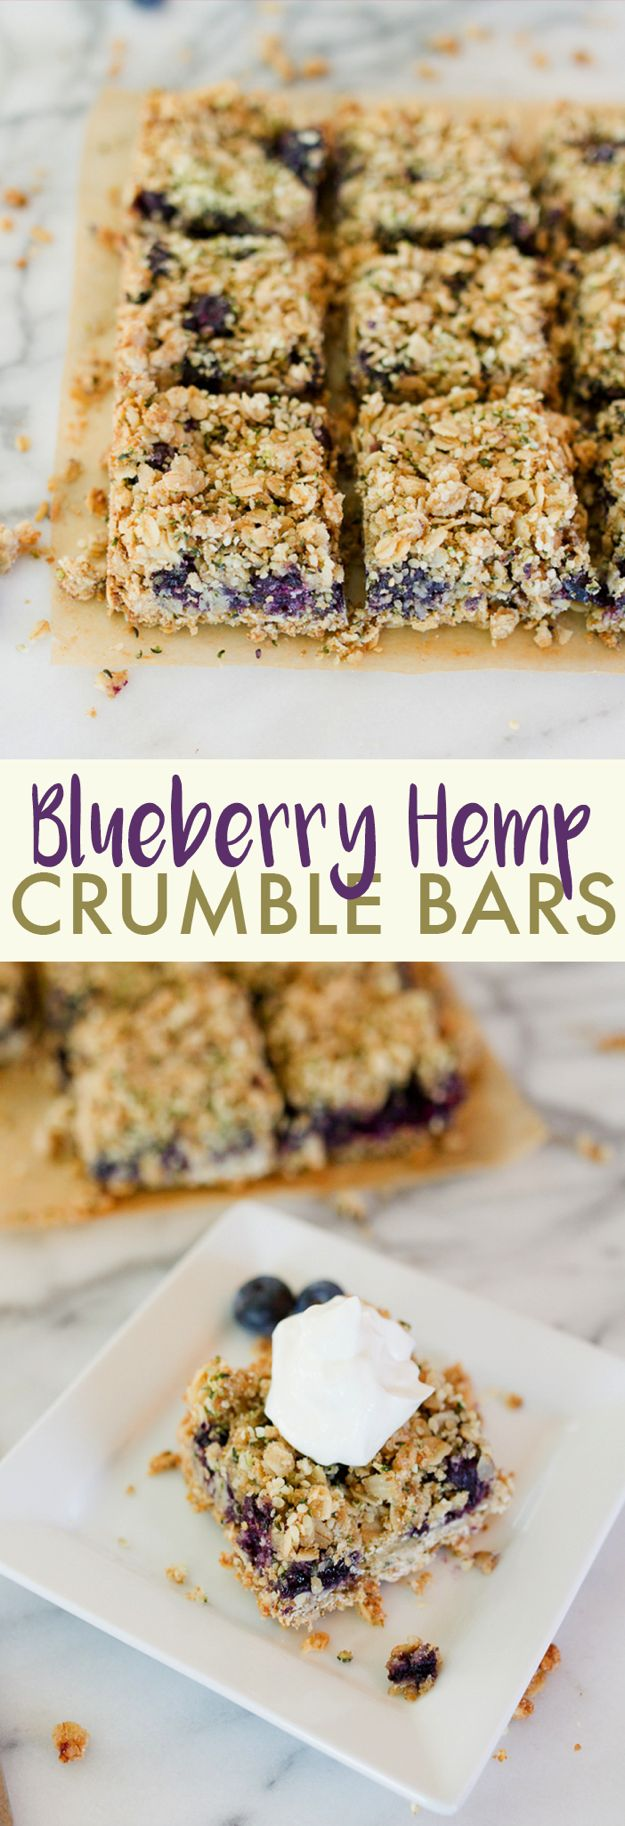 Blueberry Hemp Crumble Bars // Blueberry crumble bars made healthier with nutrient-dense Hemp Hearts, coconut oil and fresh blueberries. Serve these bars for breakfast as a special treat, with ice cream for an indulgent dessert or alone as a snack. Gluten-free, vegan and made with whole grains.